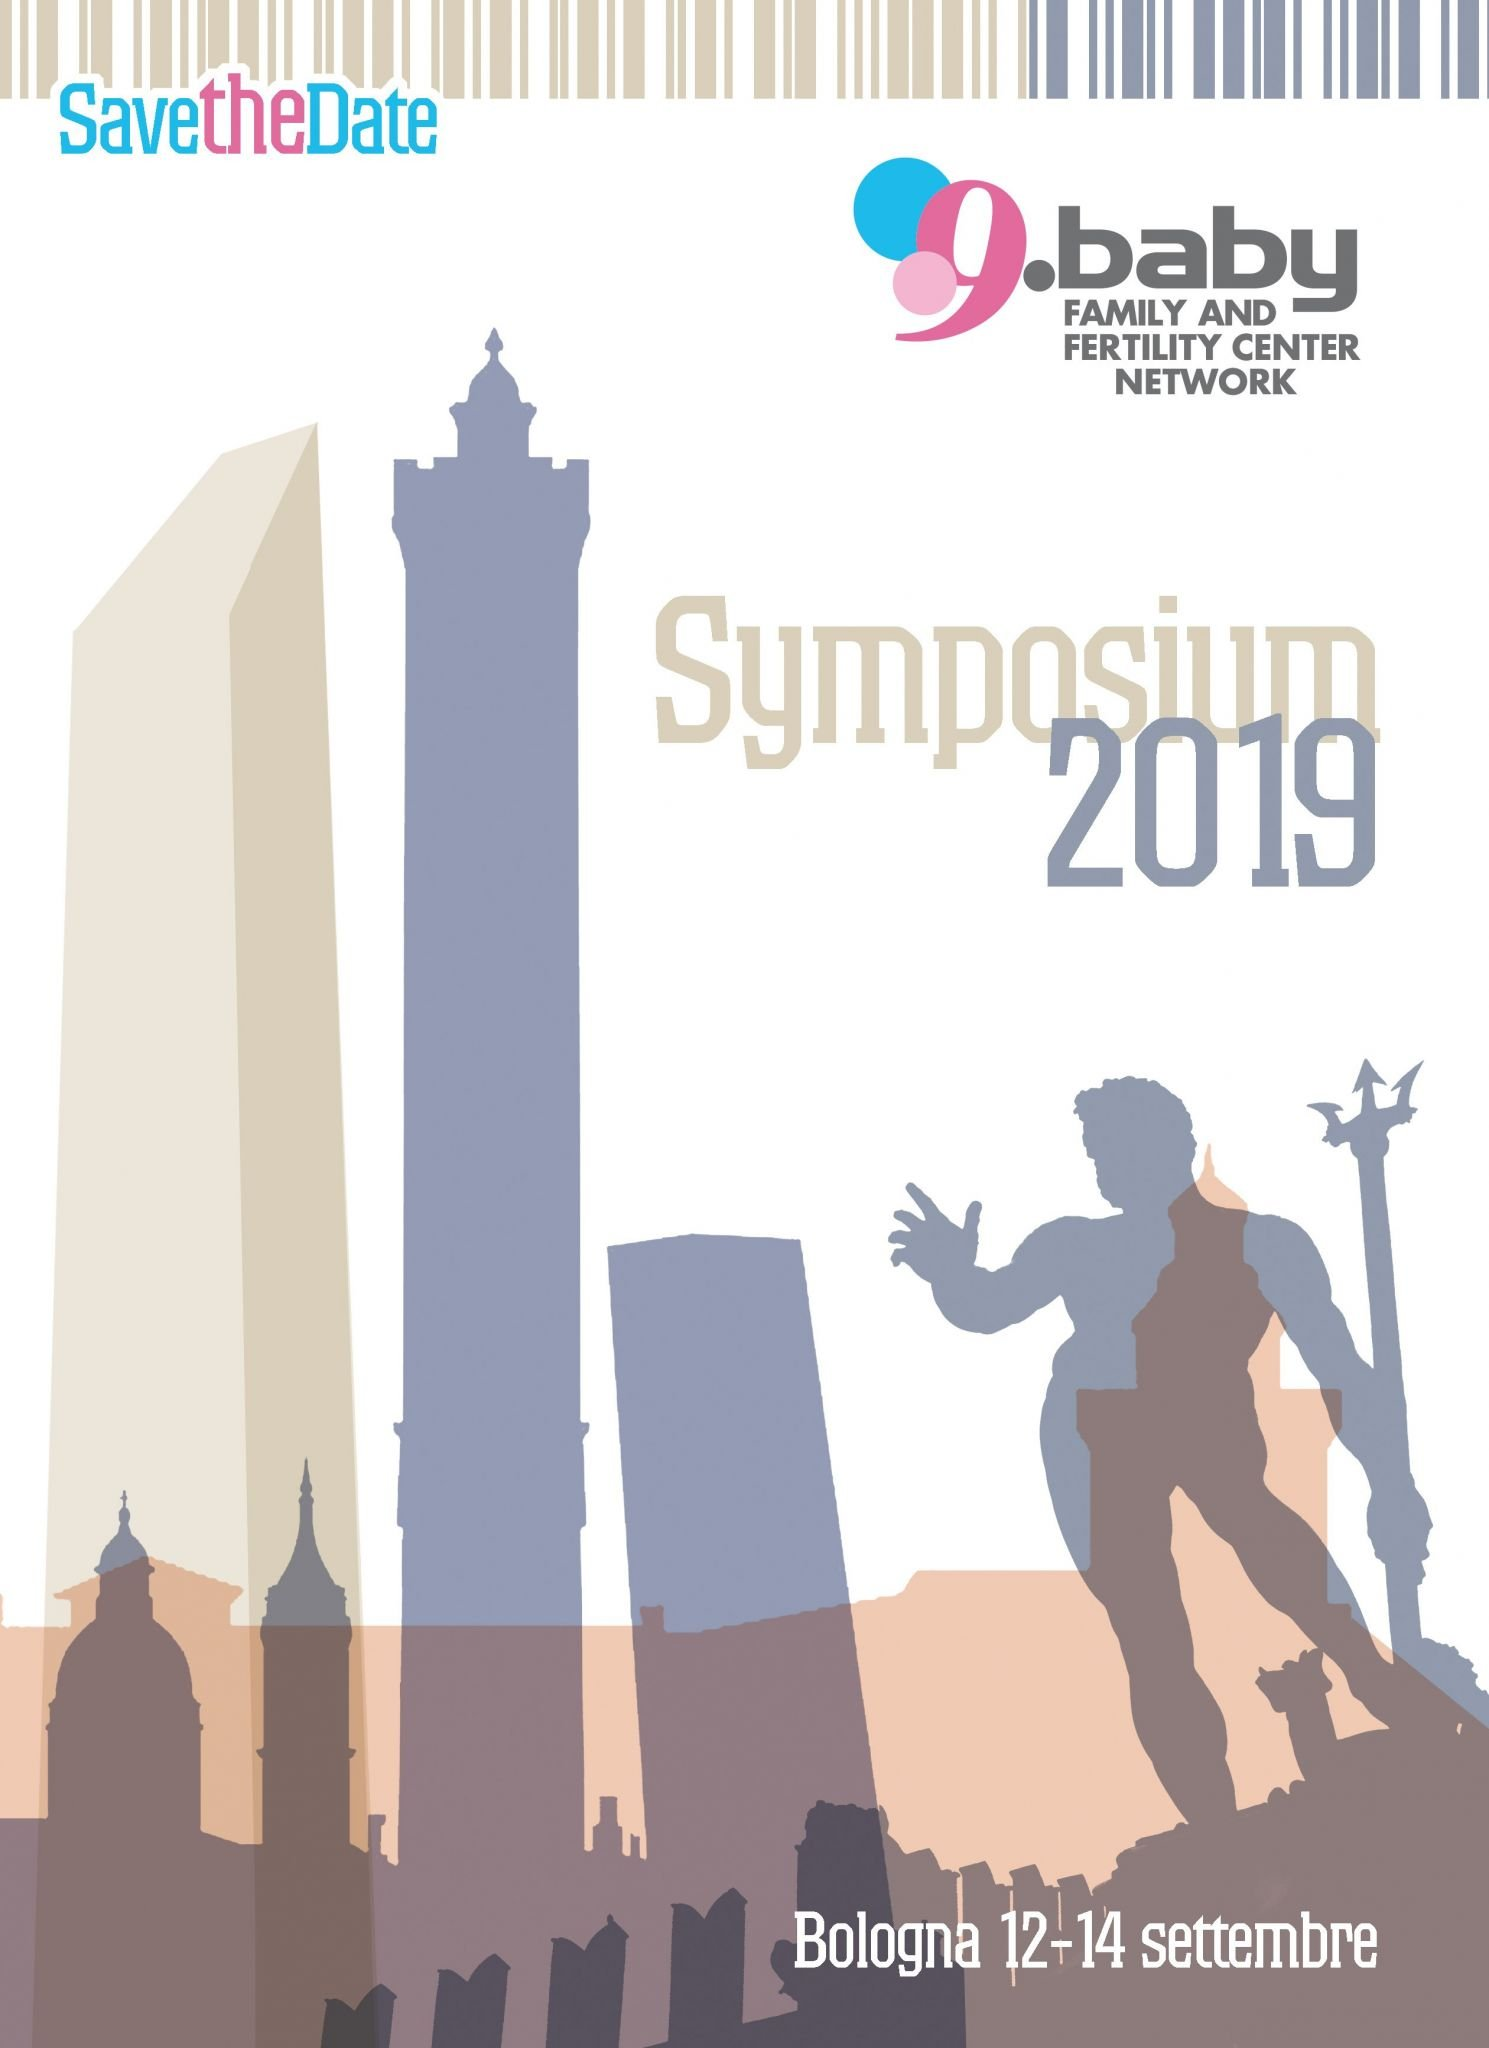 Save the date: ecco le date del 9.baby Symposium 2019